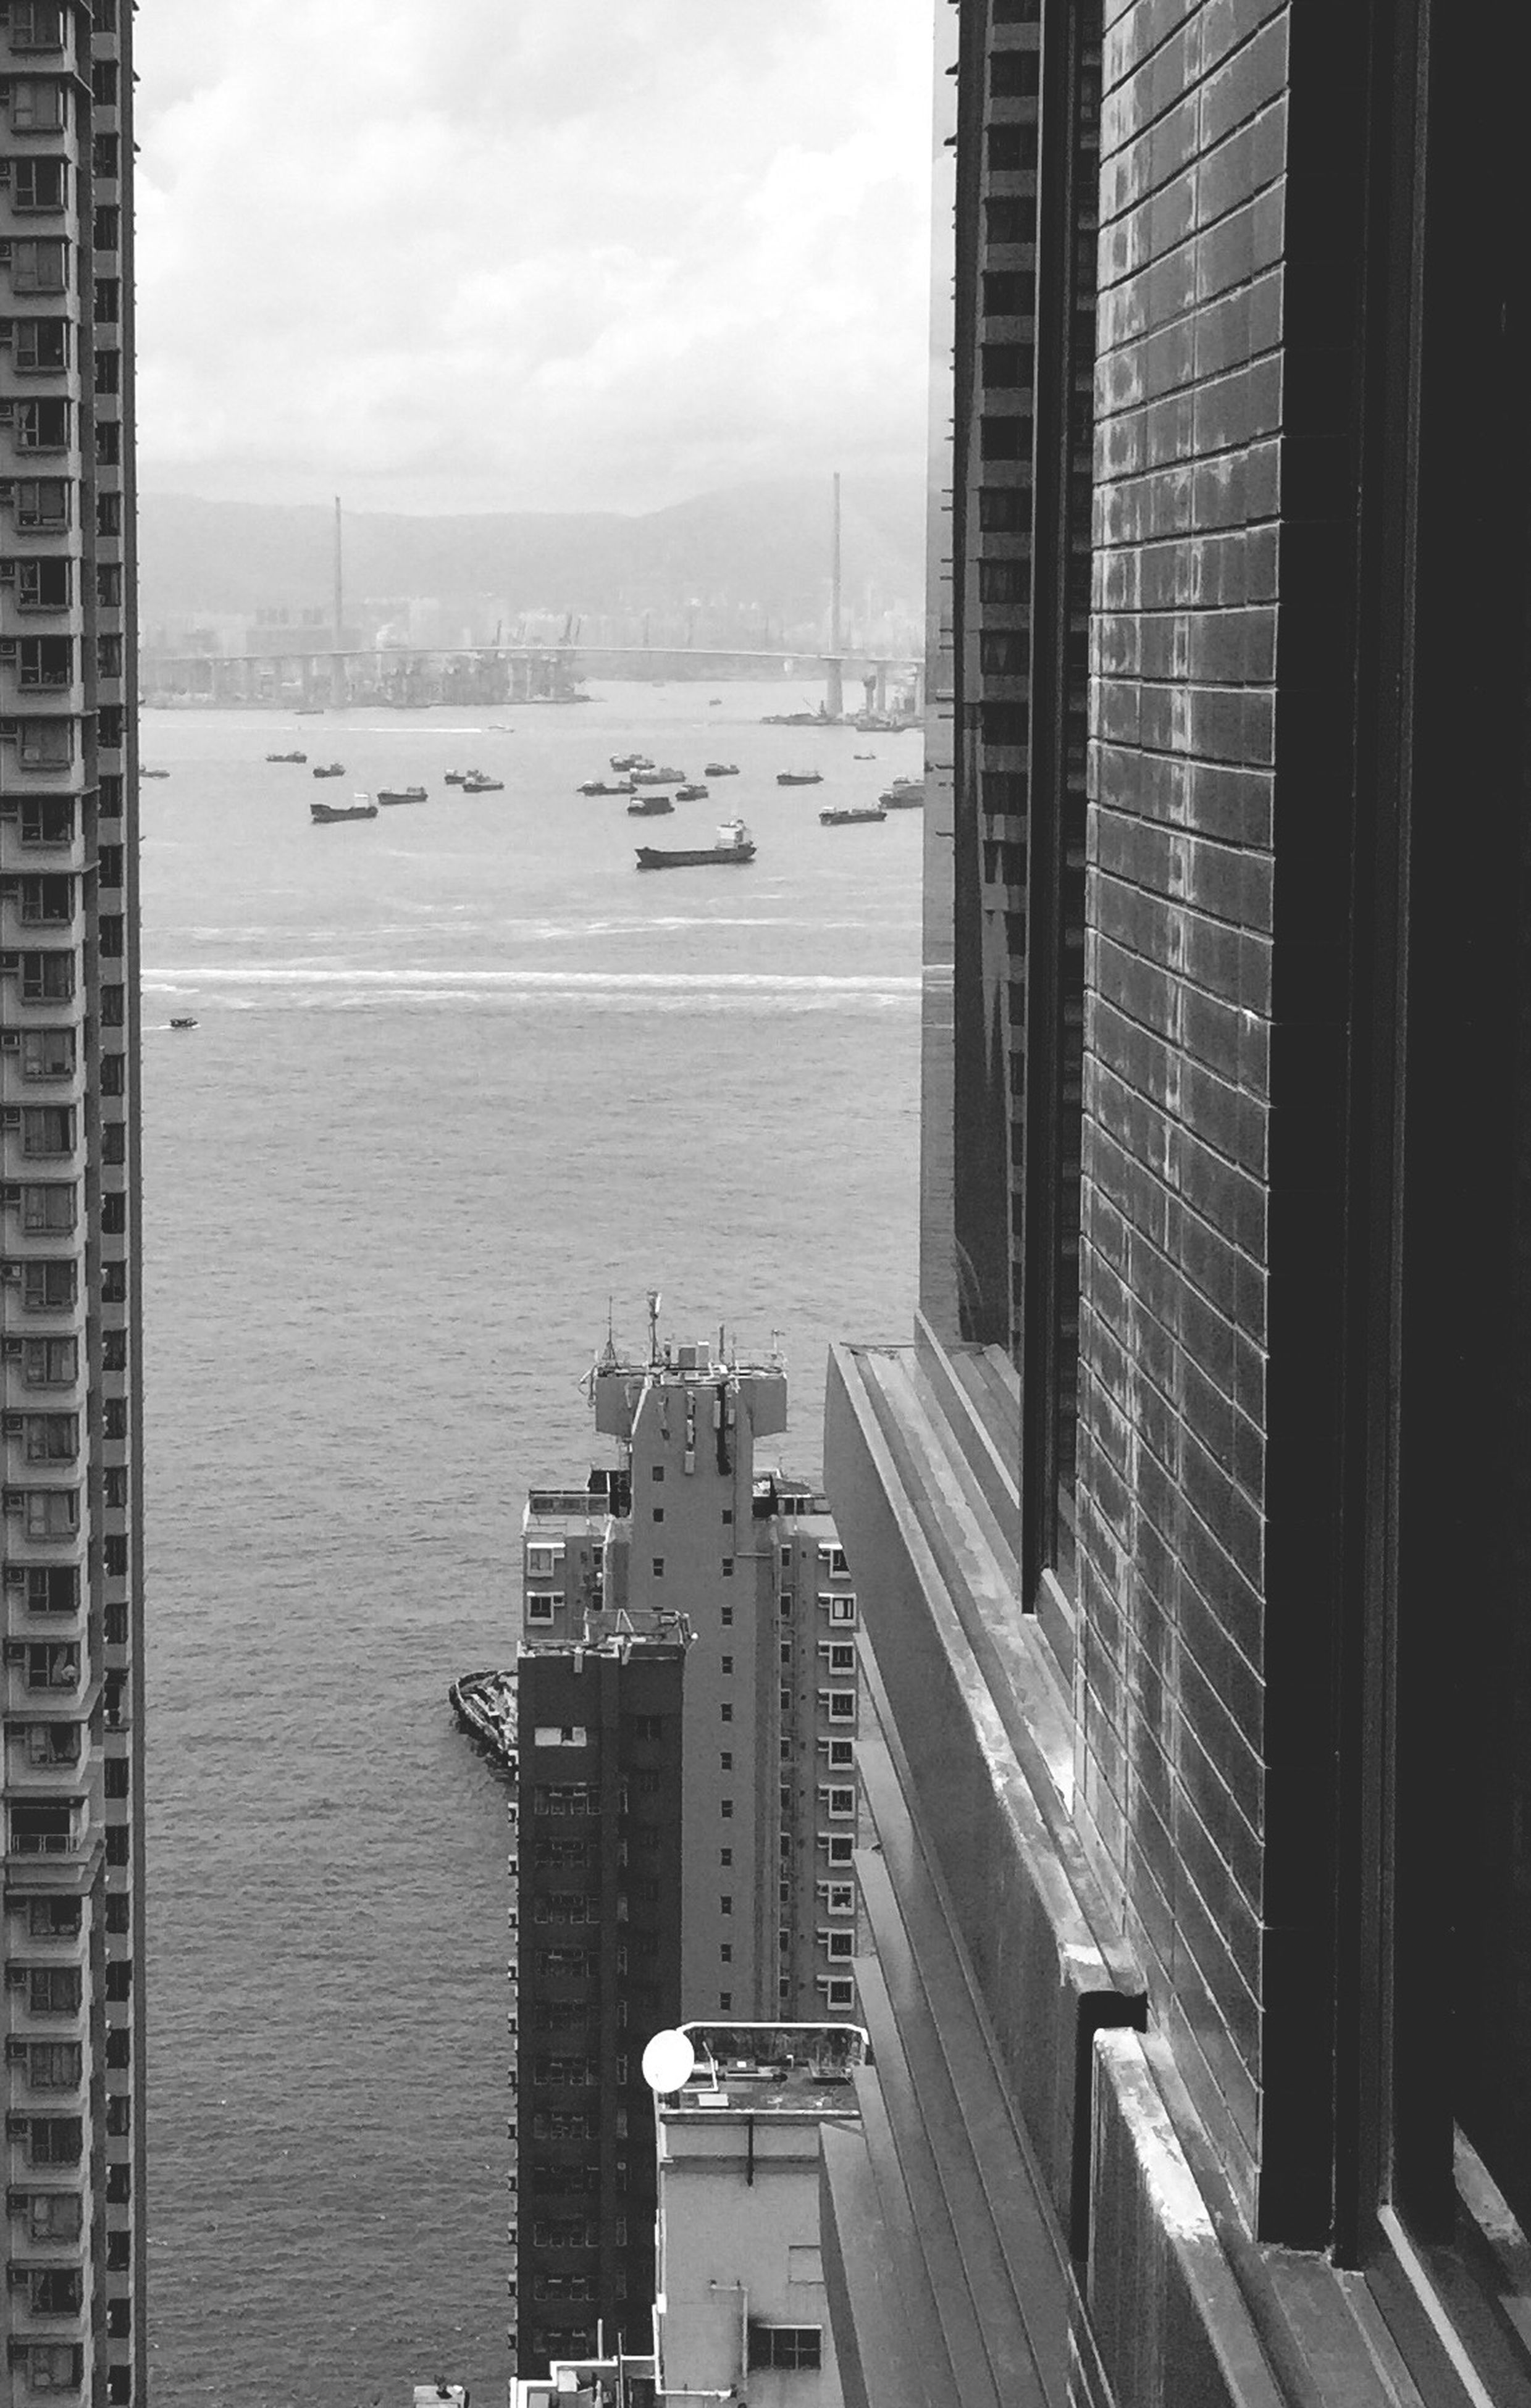 transportation, architecture, mode of transport, nautical vessel, built structure, city, water, boat, sky, harbor, cityscape, cloud - sky, modern, office building, outdoors, no people, ship, development, day, tall - high, city life, nature